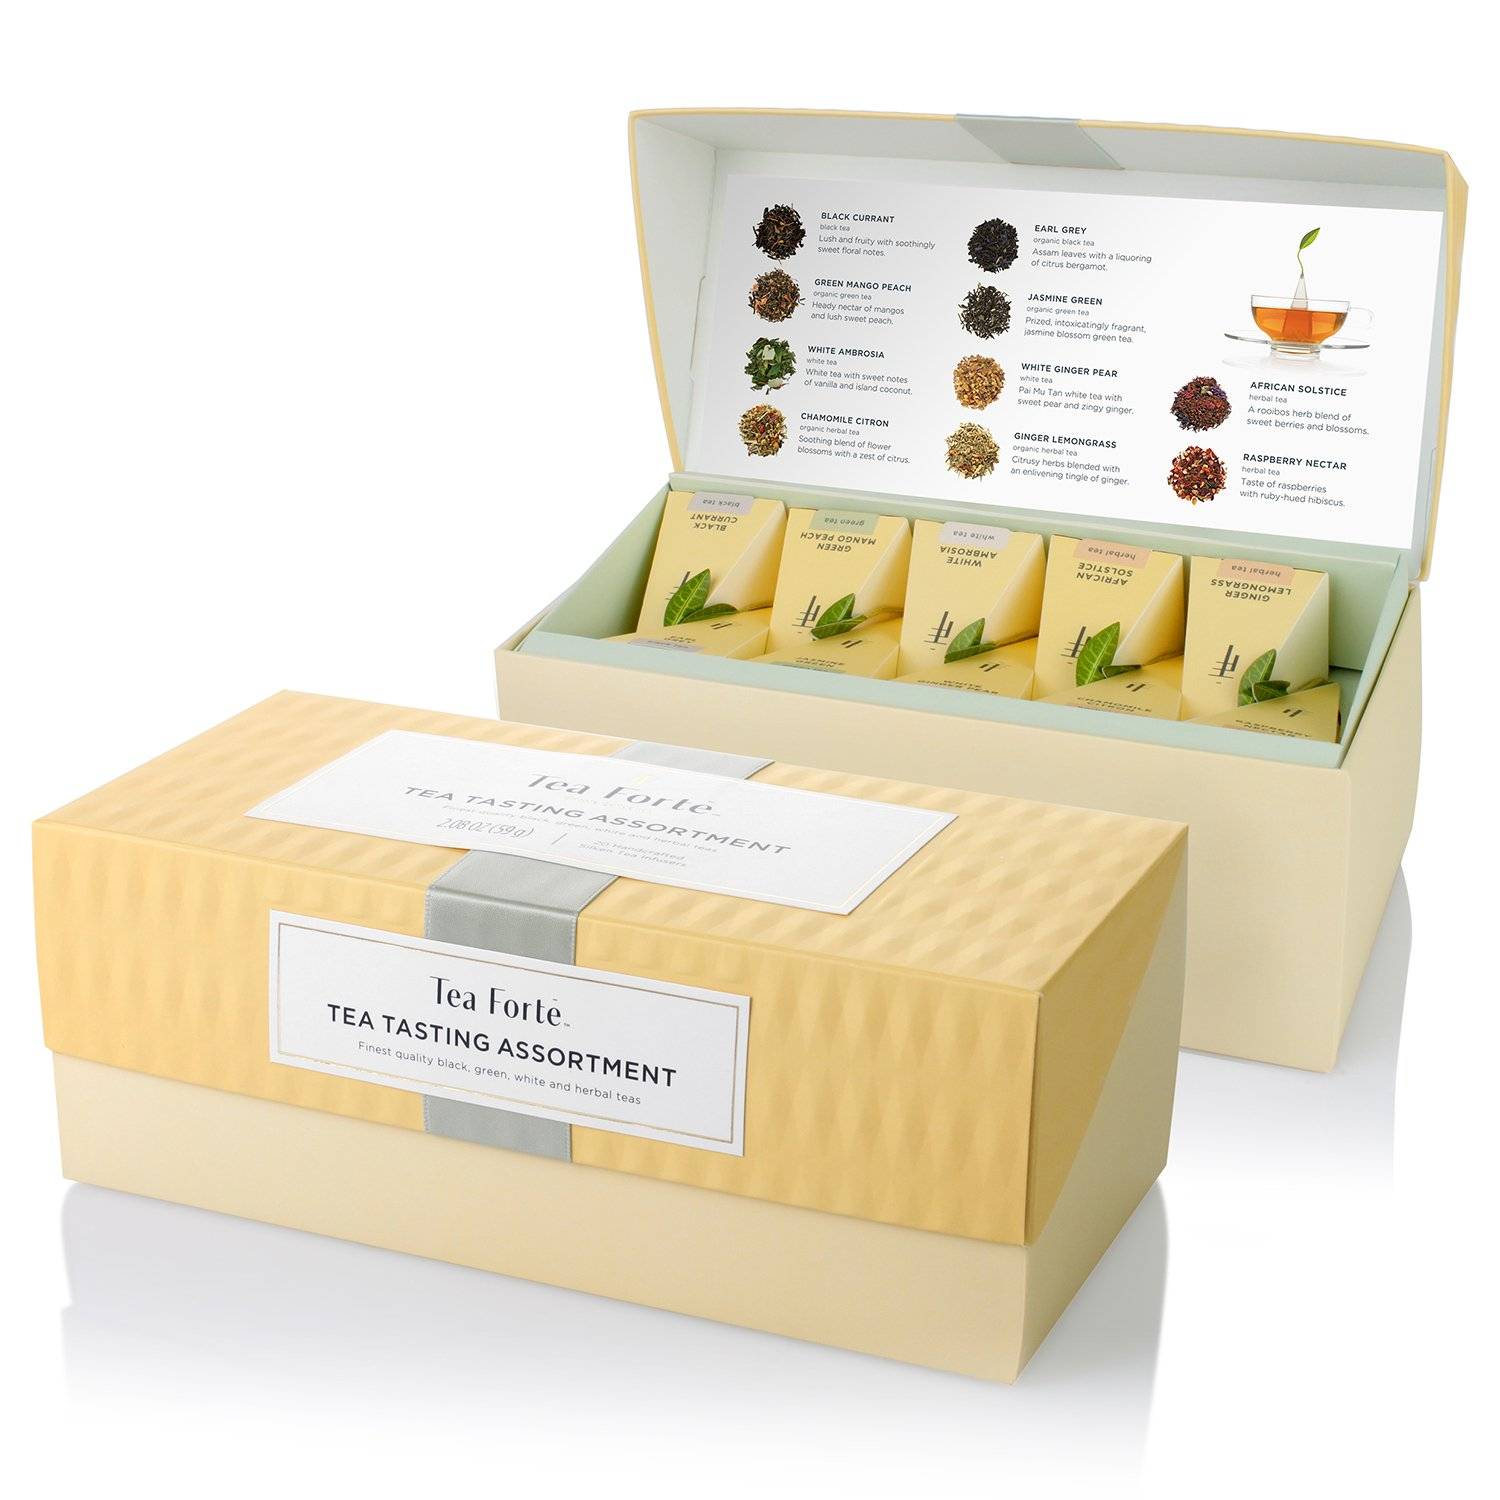 Tea Forte Tea Tasting Assortment Presentation Box Tea Sampler, Assorted Variety Tea Box, 20 Handcrafted Pyramid Tea Infuser Bags, Black Tea, White Tea, Green Tea, Herbal Tea by Tea Forte